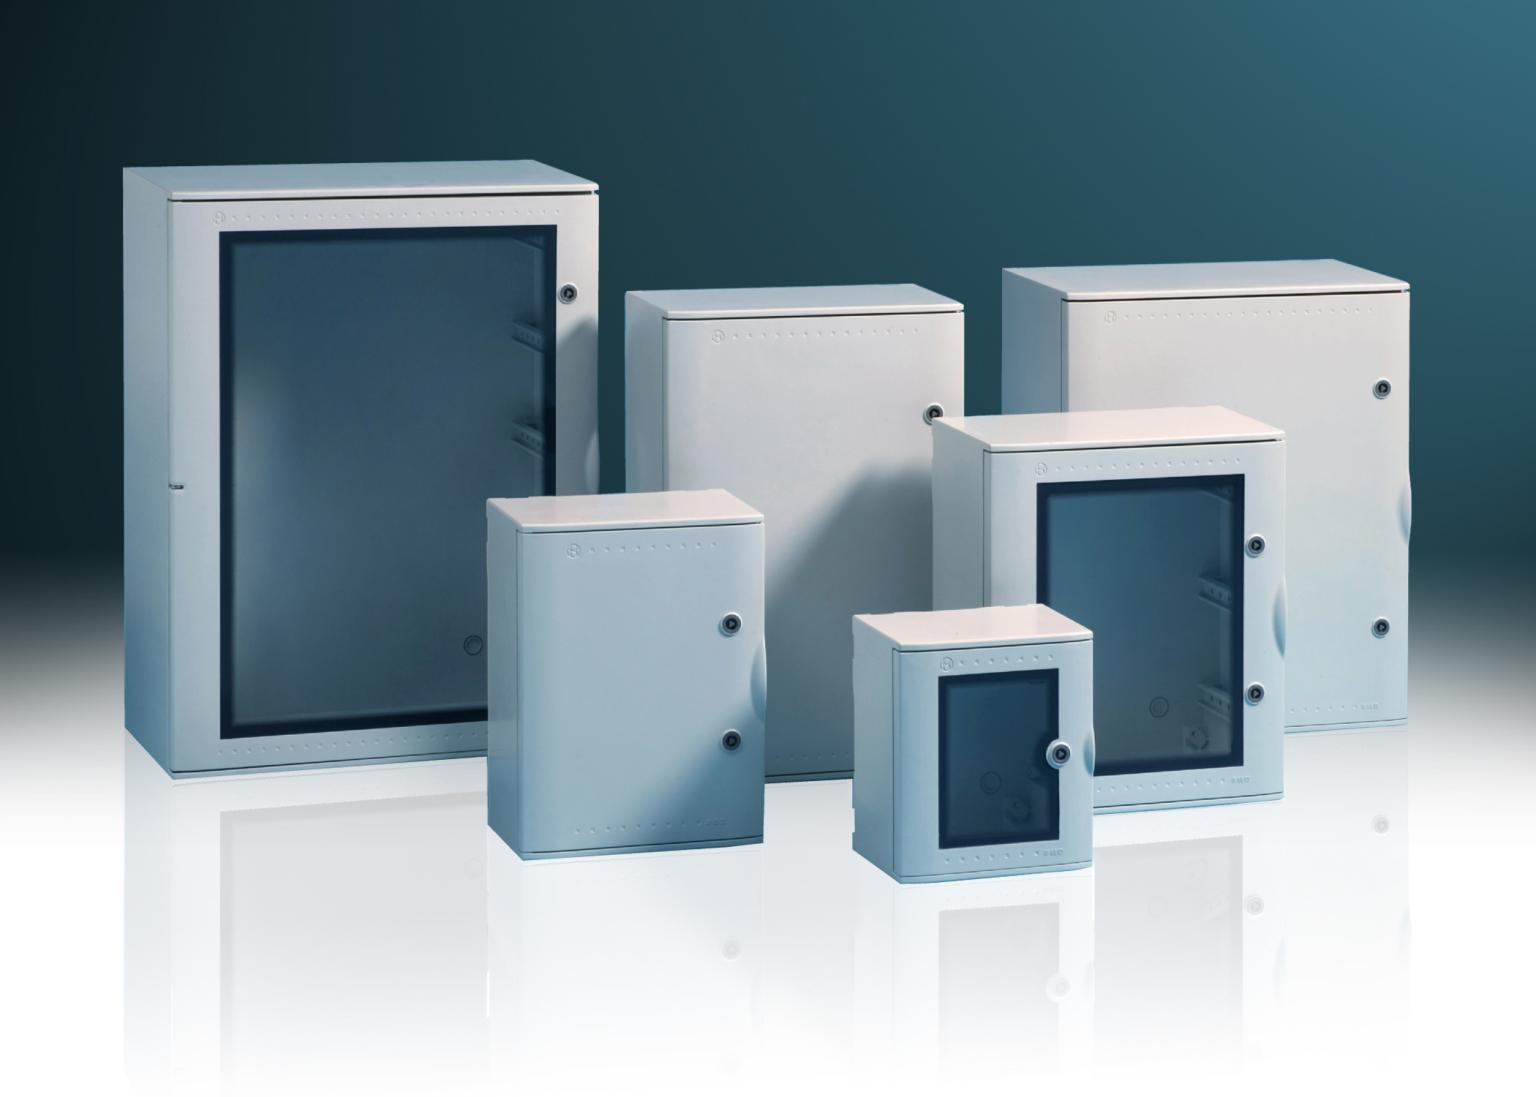 Spelsberg has extended its enclosures portfolio with a new line of high quality, heavy duty GRP (glass reinforced polyester) products